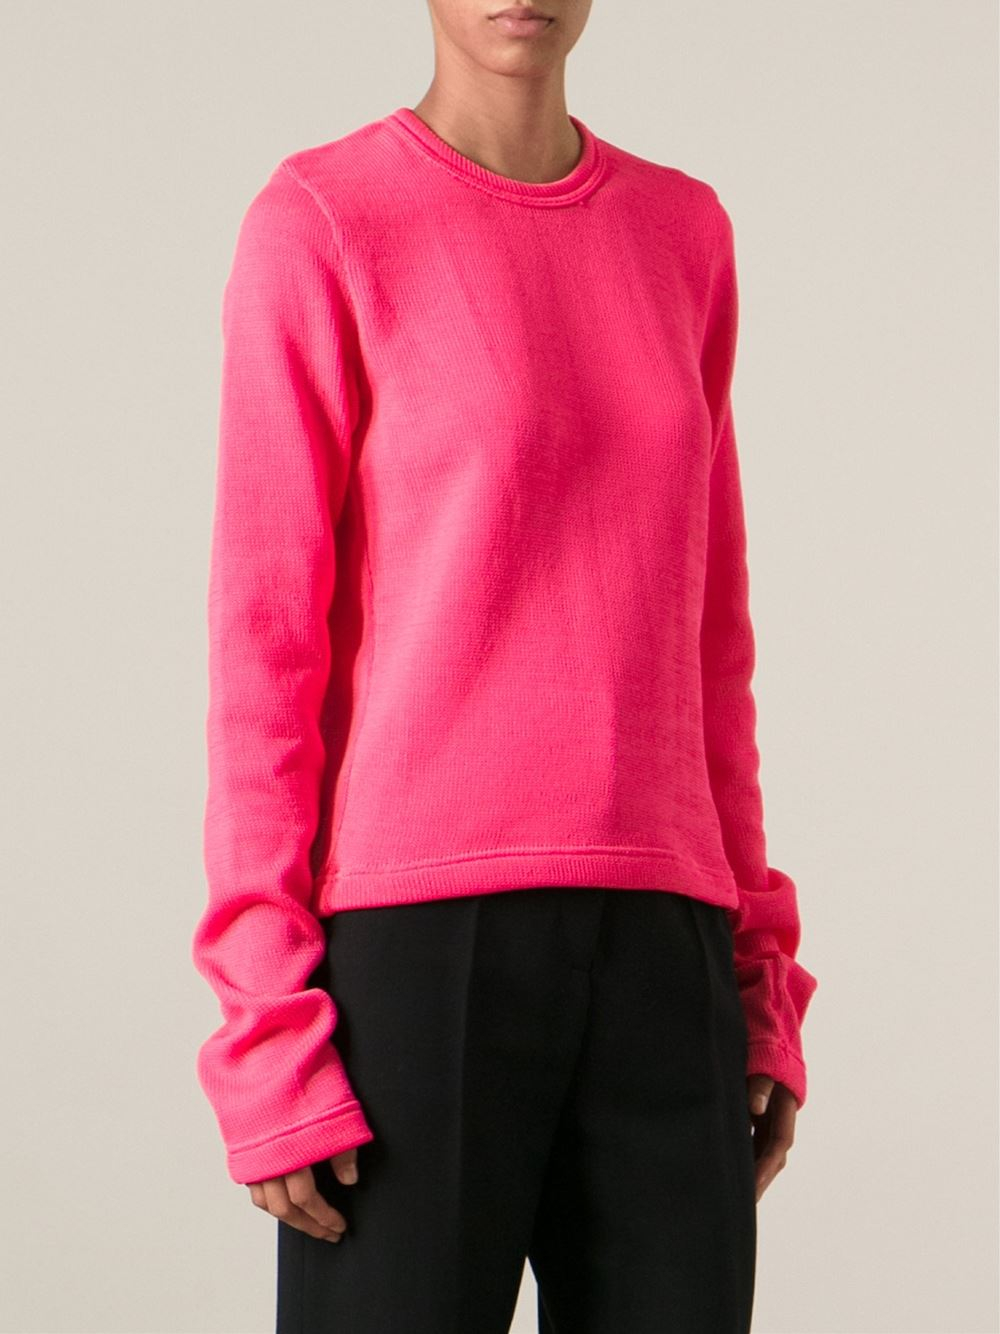 Comme des garçons Extra Long Sleeve Sweater in Pink | Lyst